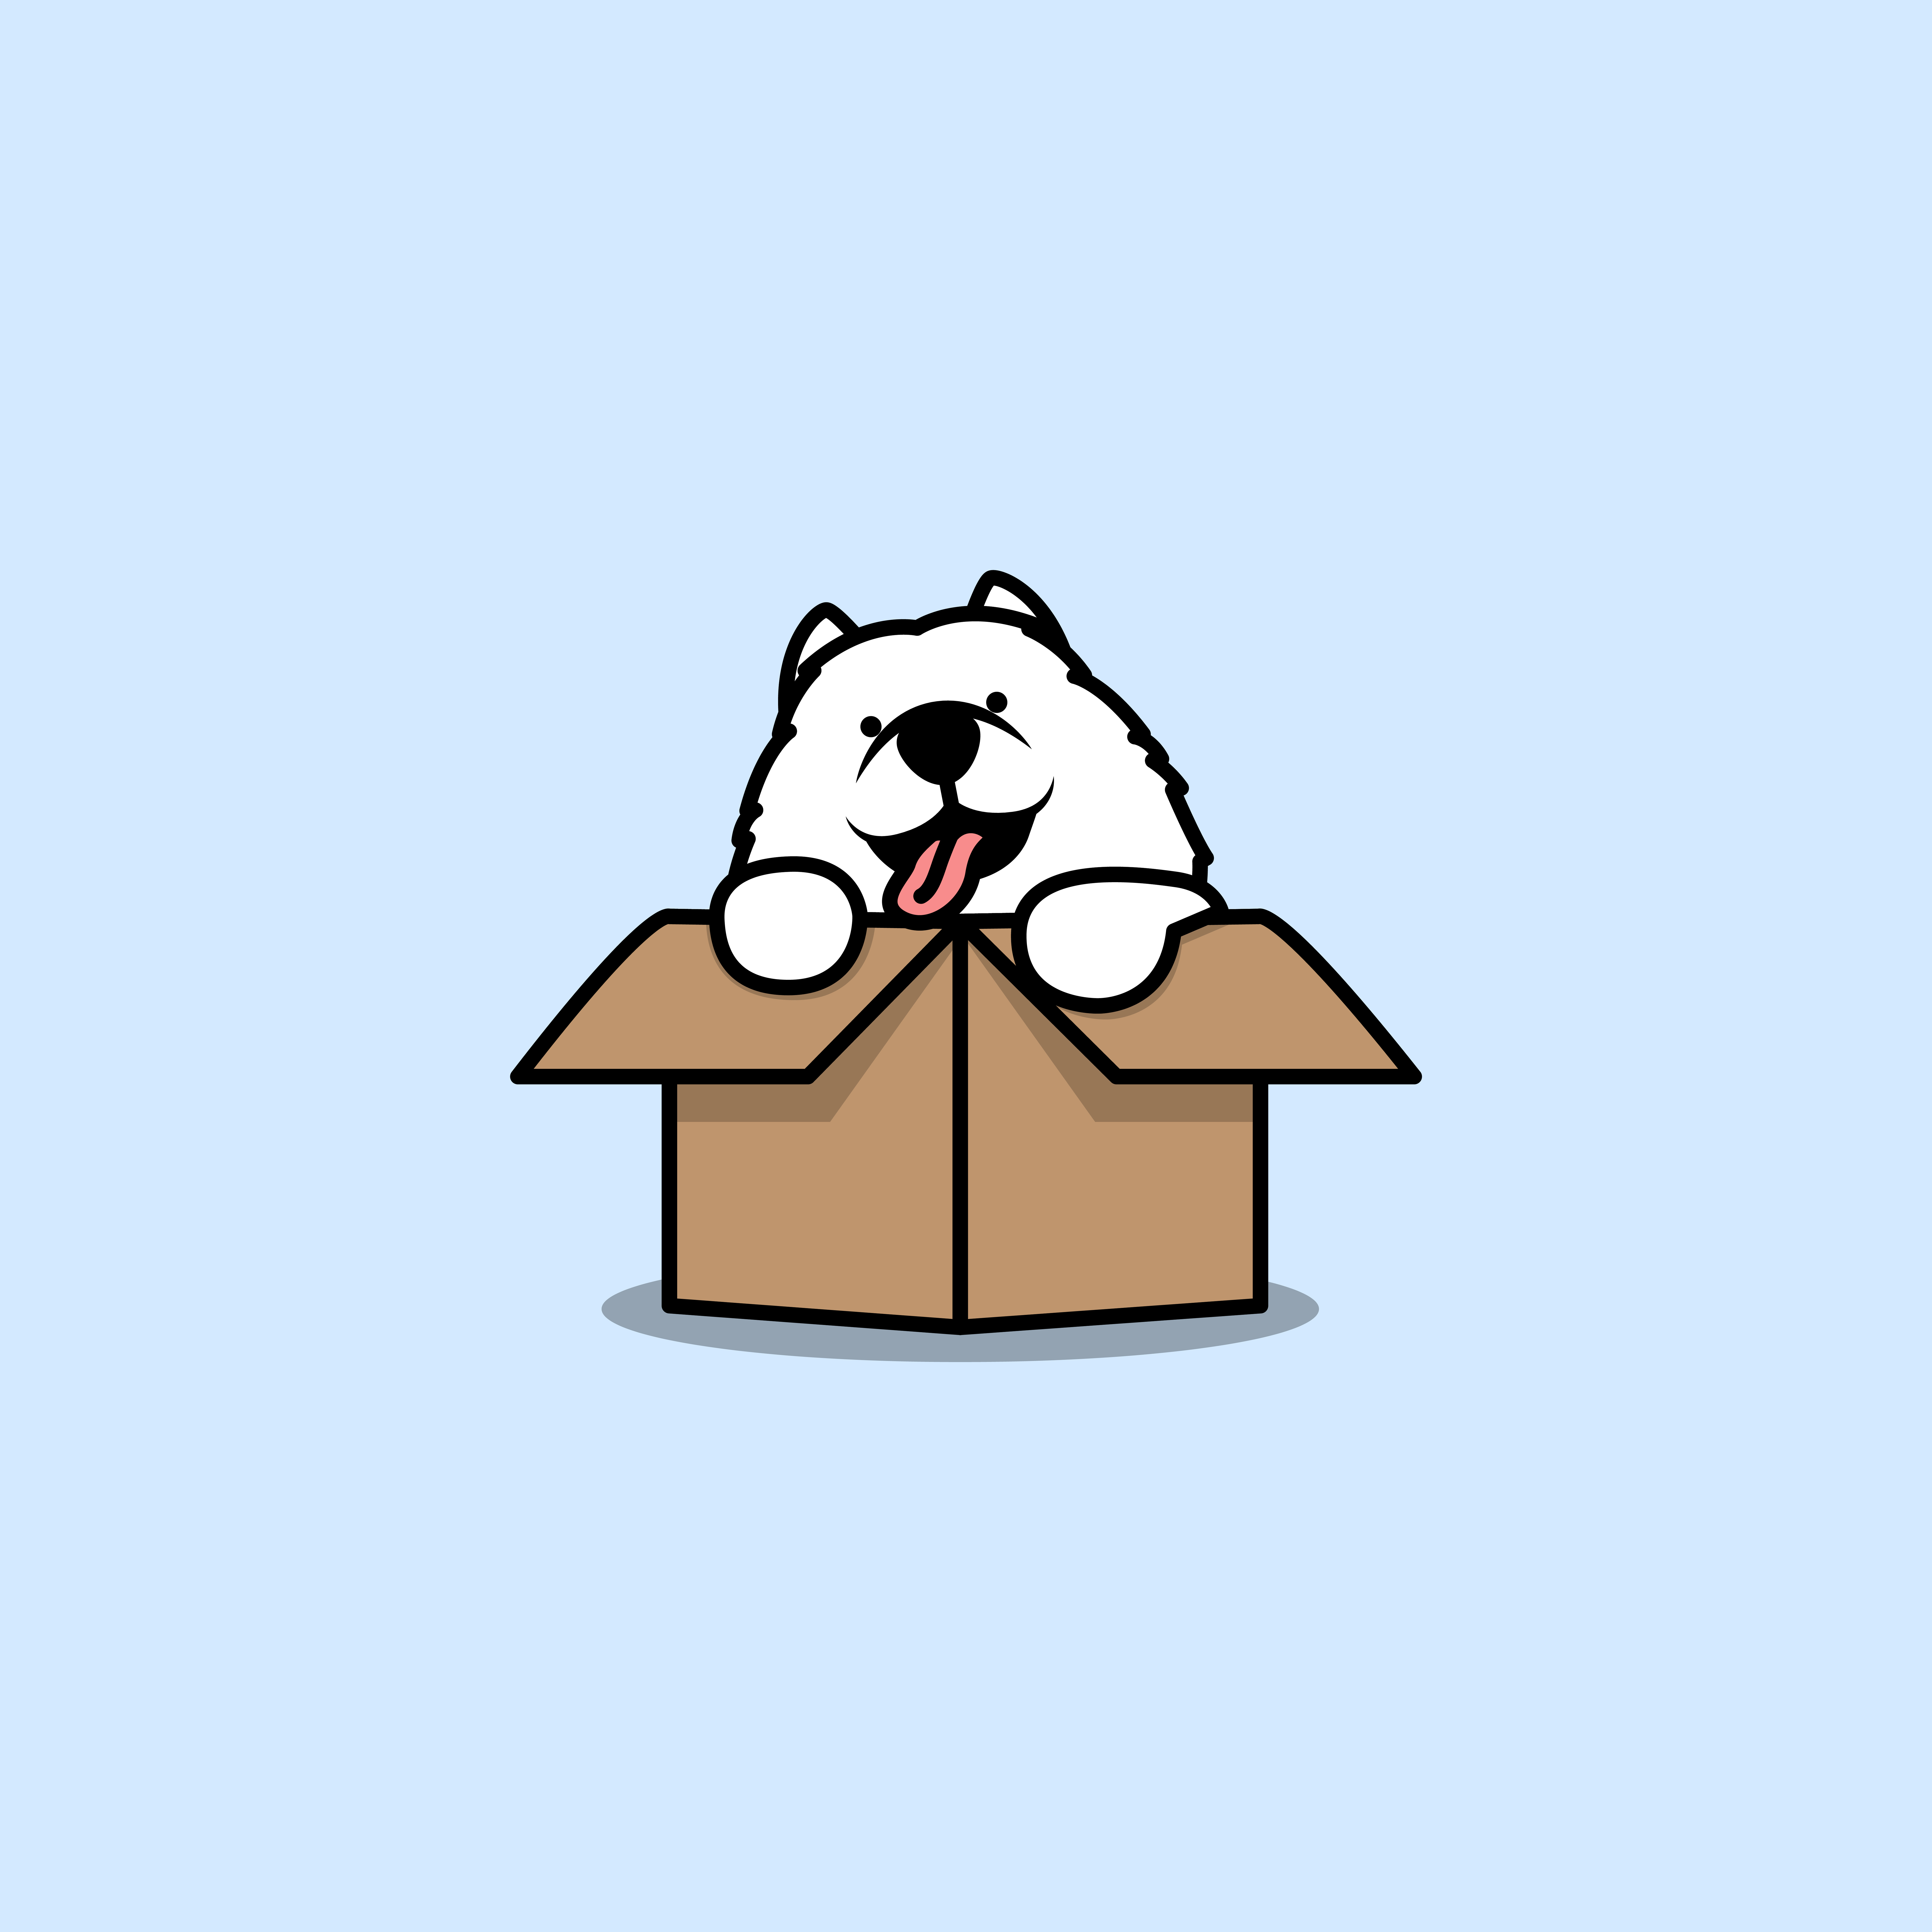 Cute Samoyed Puppy In Box Cartoon Download Free Vectors Clipart Graphics Vector Art